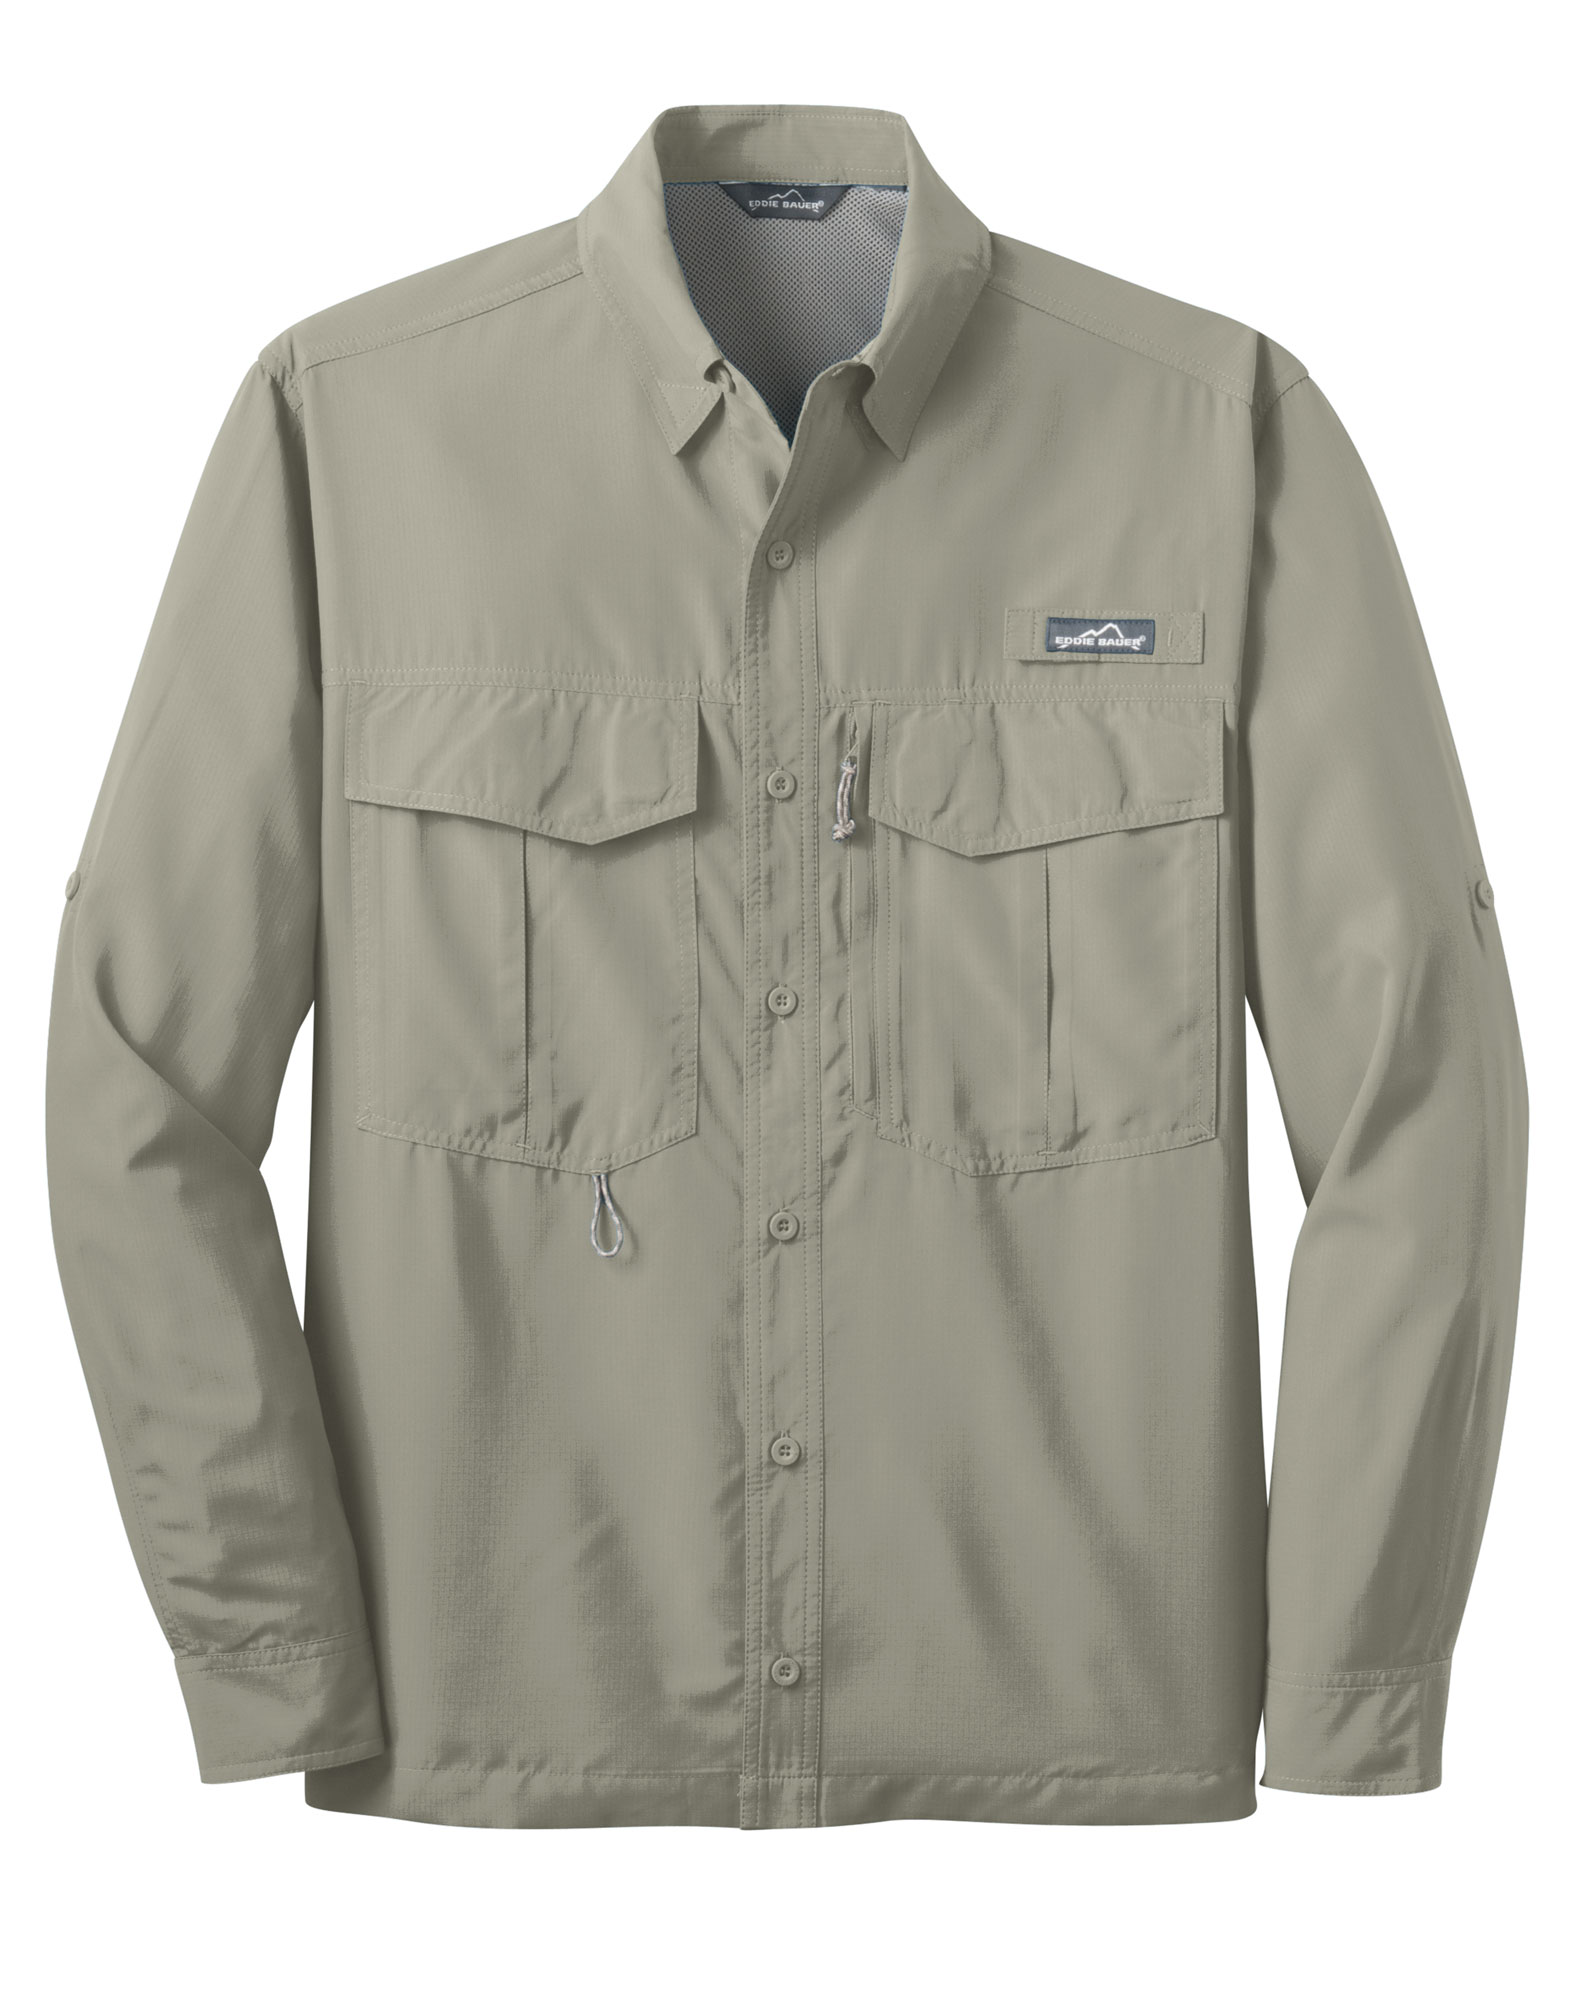 custom eddiebauer long sleeve performance fishing shirt